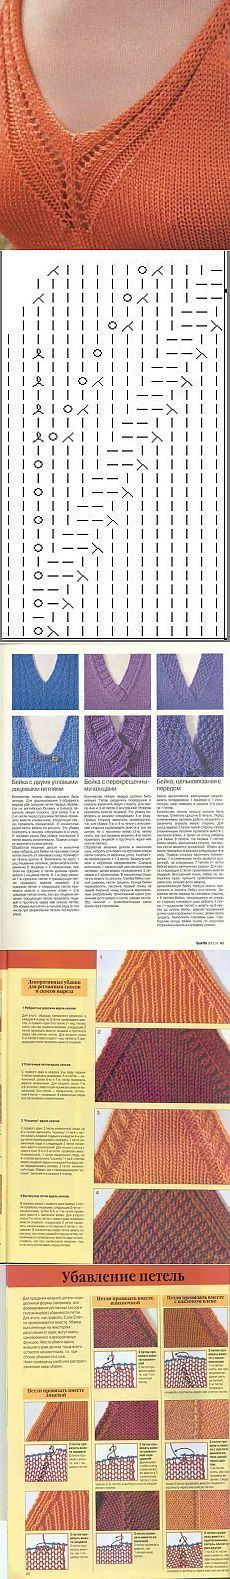 Crochet Patterns Pullover Detail that makes the difference Knitting Stiches, Knitting Charts, Lace Knitting, Knitting Patterns Free, Crochet Stitches, Knit Crochet, Lace Patterns, Stitch Patterns, Crochet Patterns